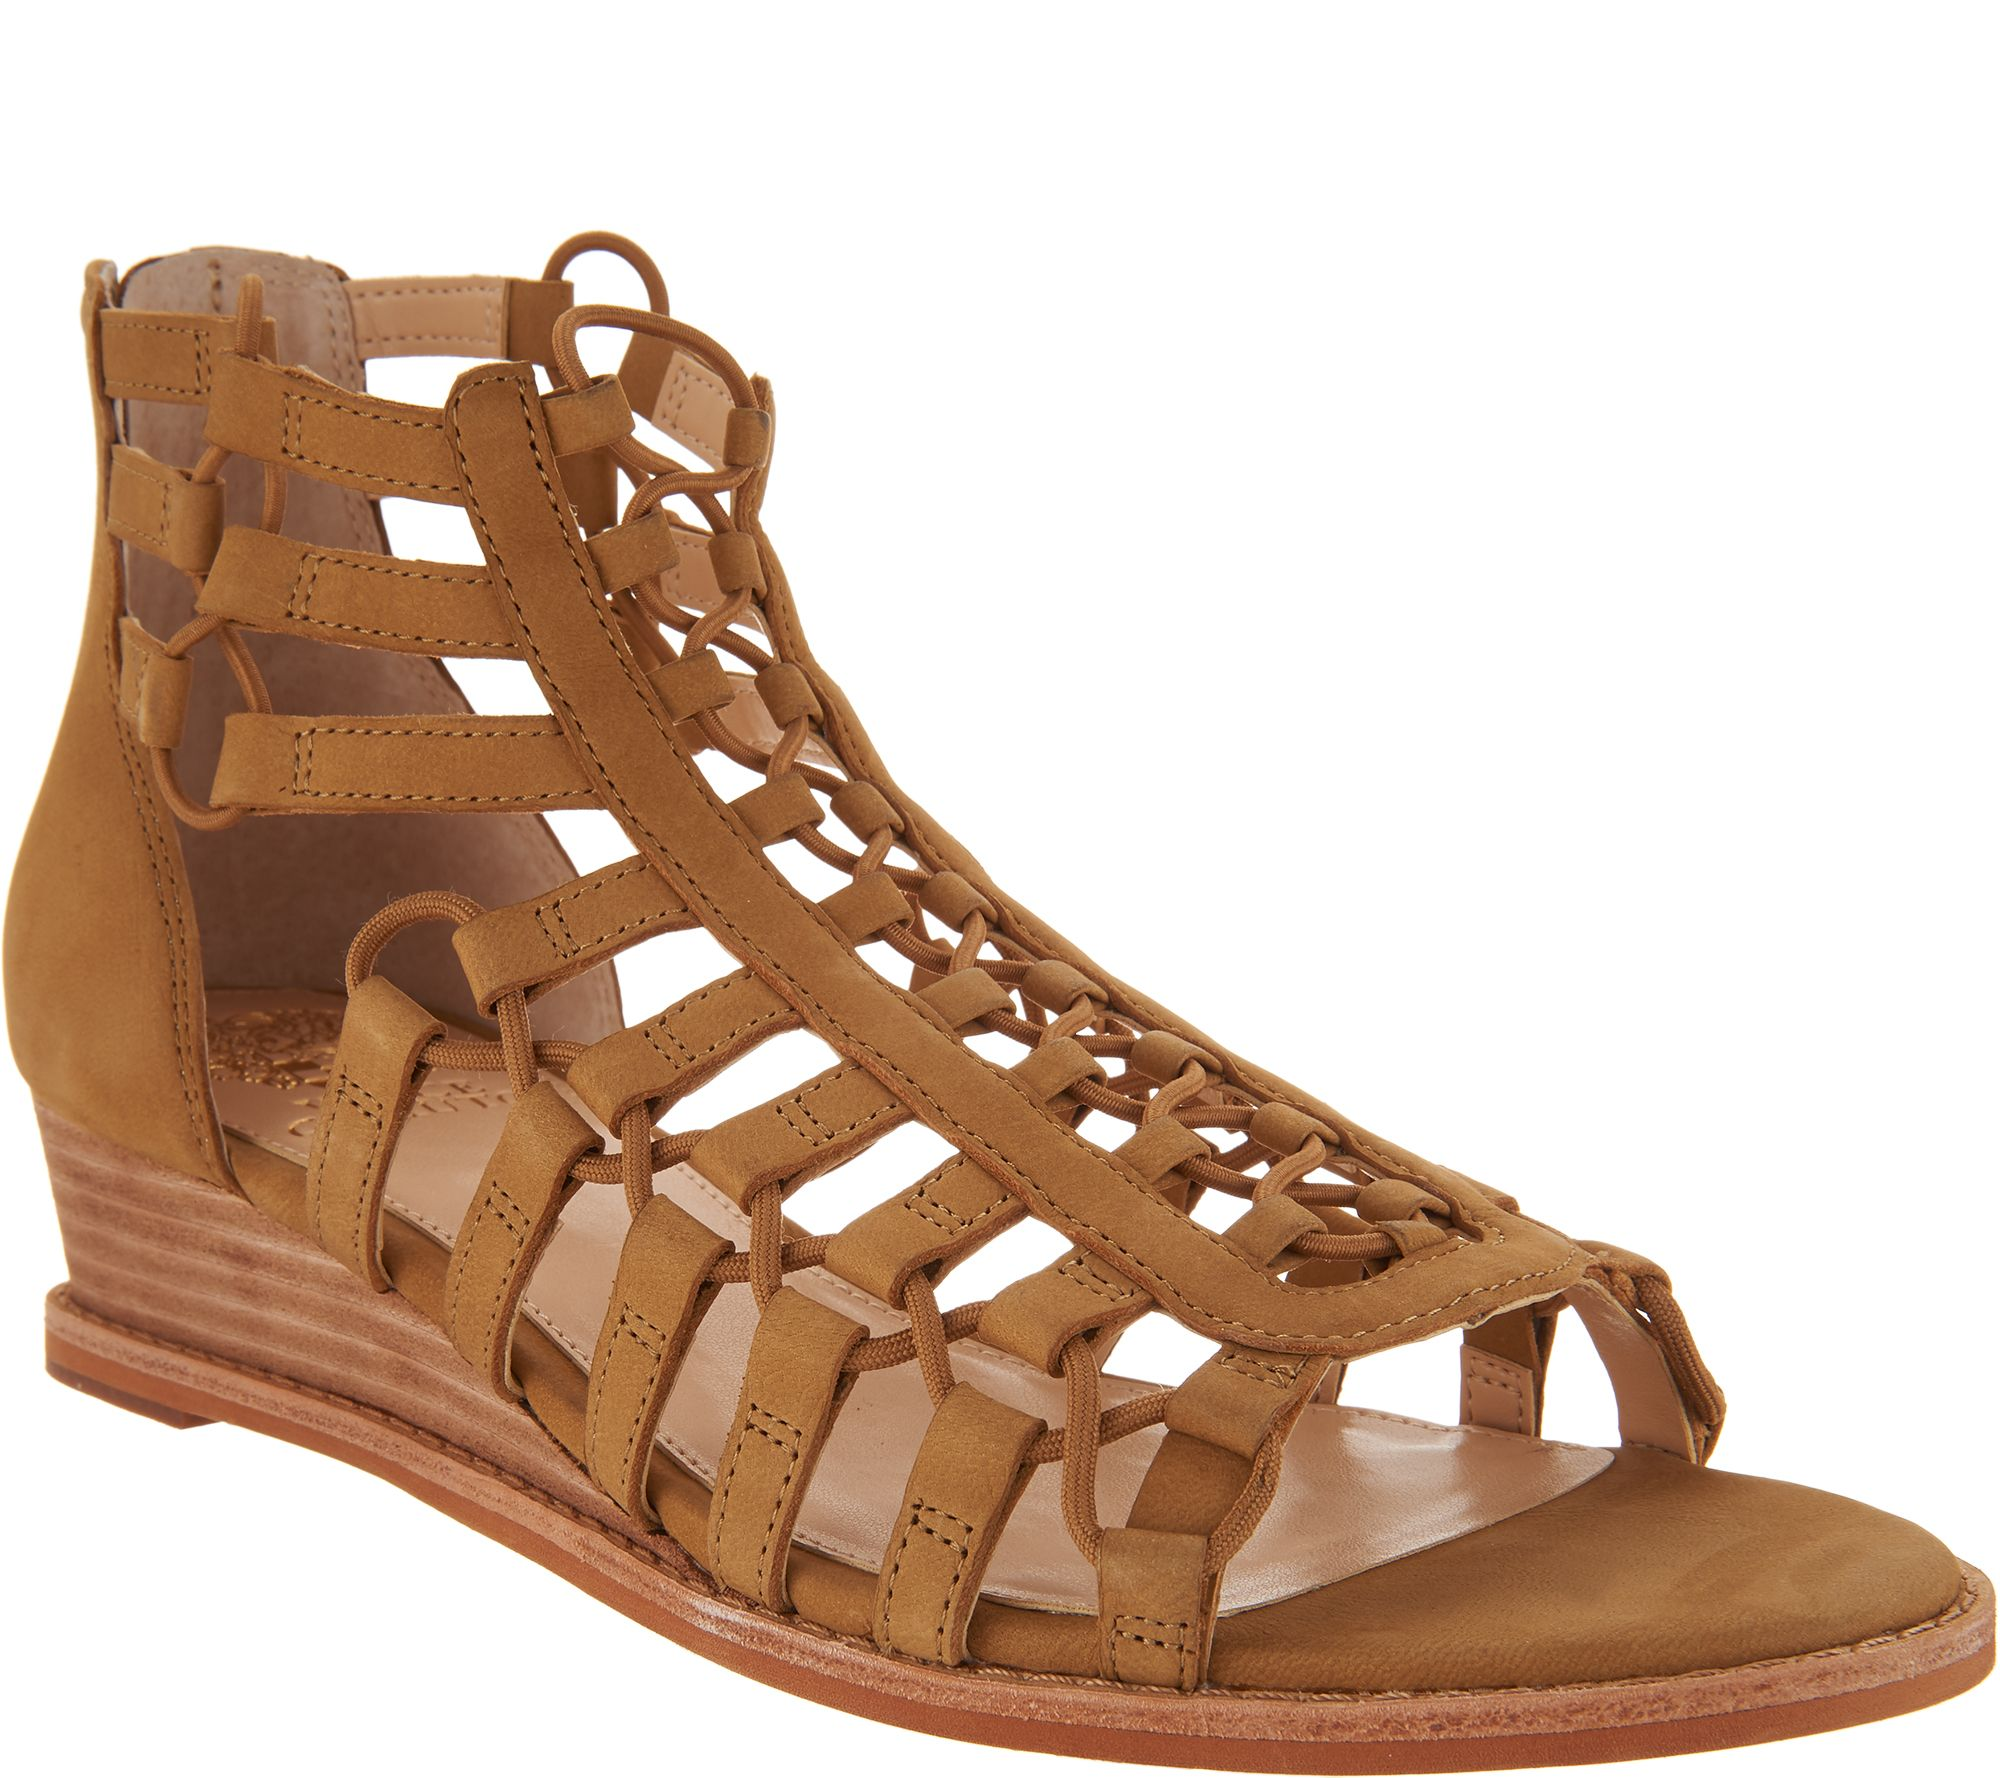 32eb8d227dfe Vince Camuto Leather Gladiator Wedge Sandals - Richetta - Page 1 — QVC.com